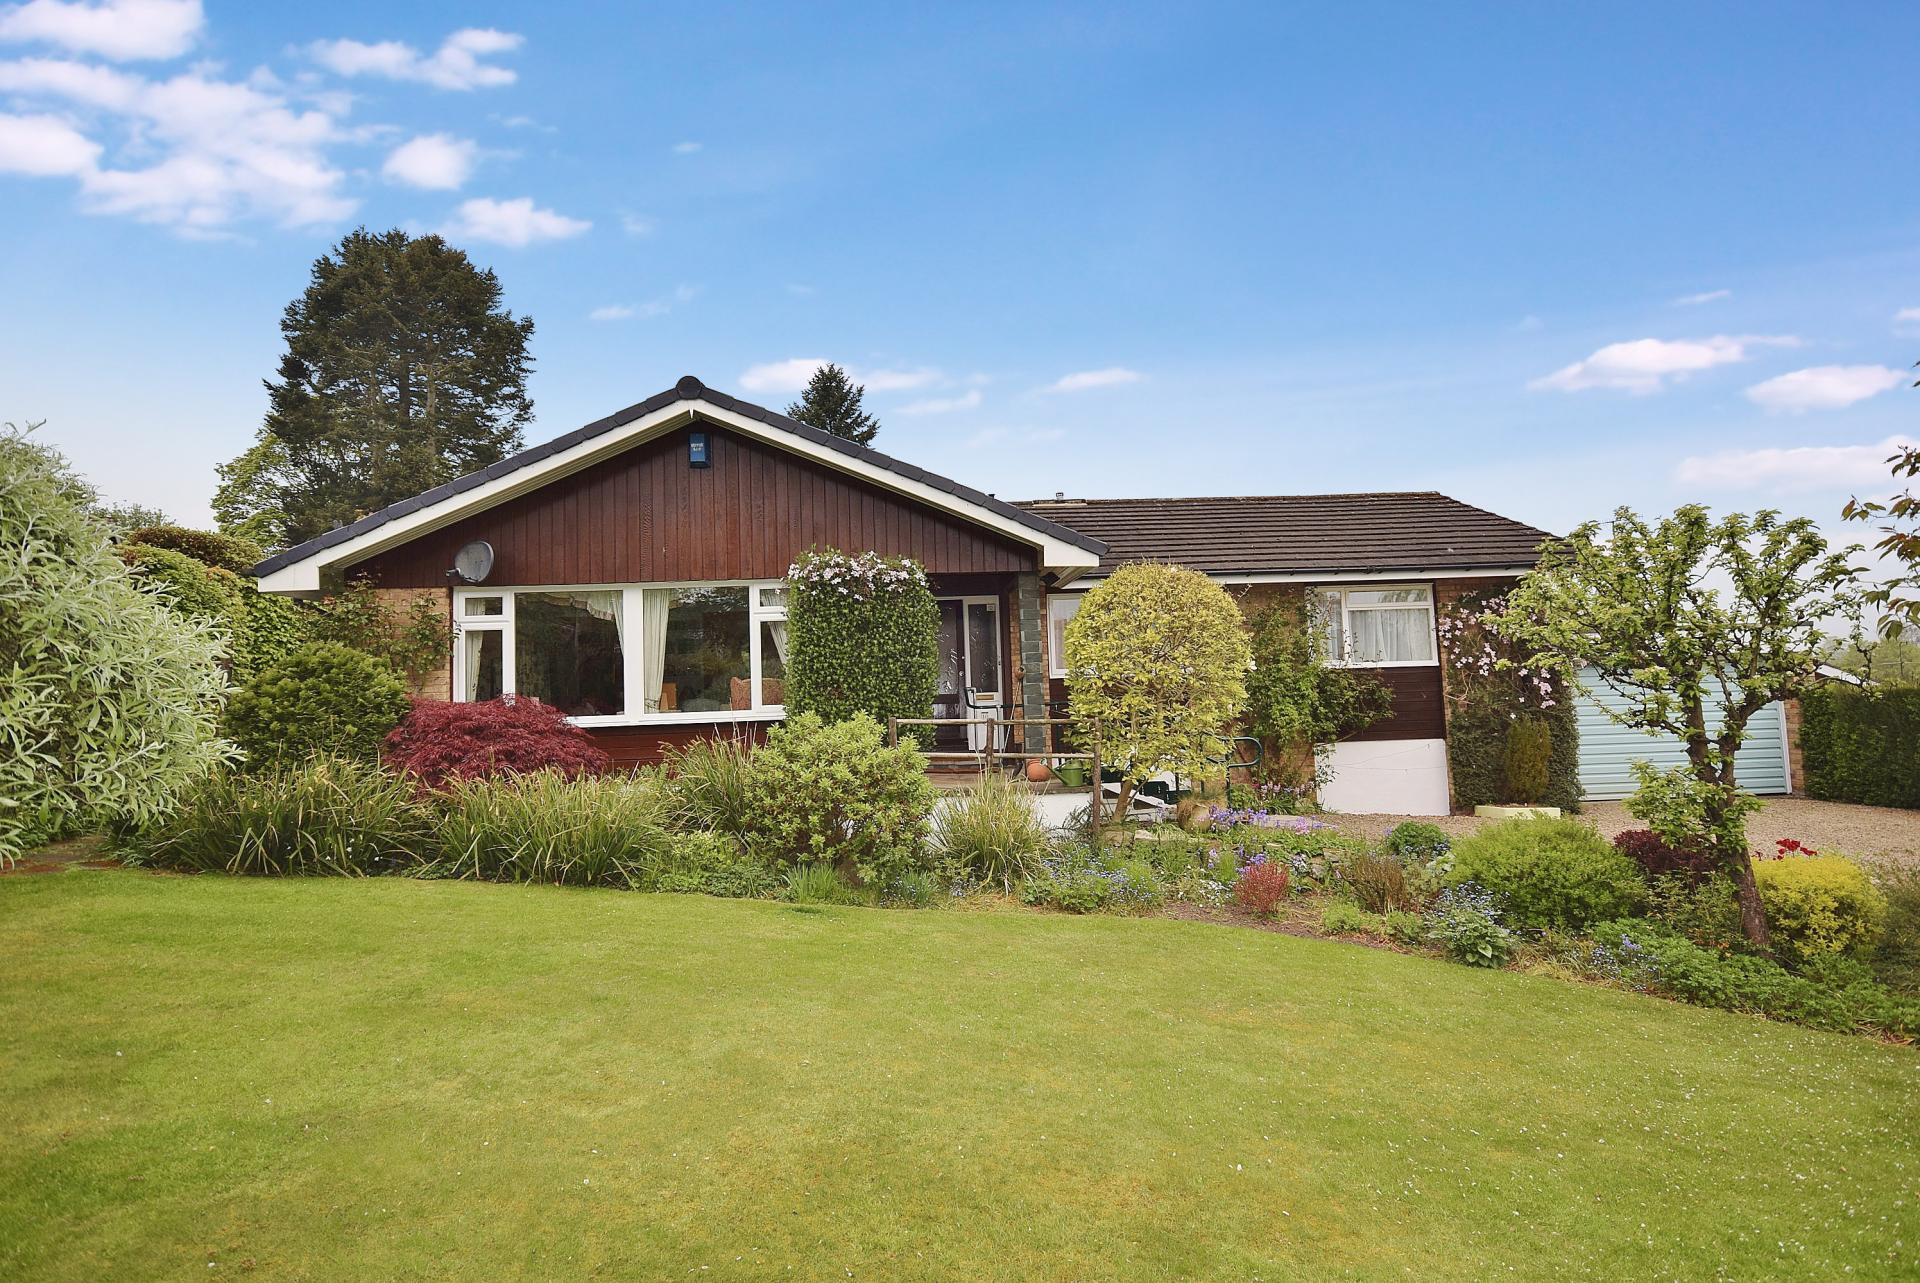 3 Bedrooms Bungalow for sale in Causey Park, Hexham